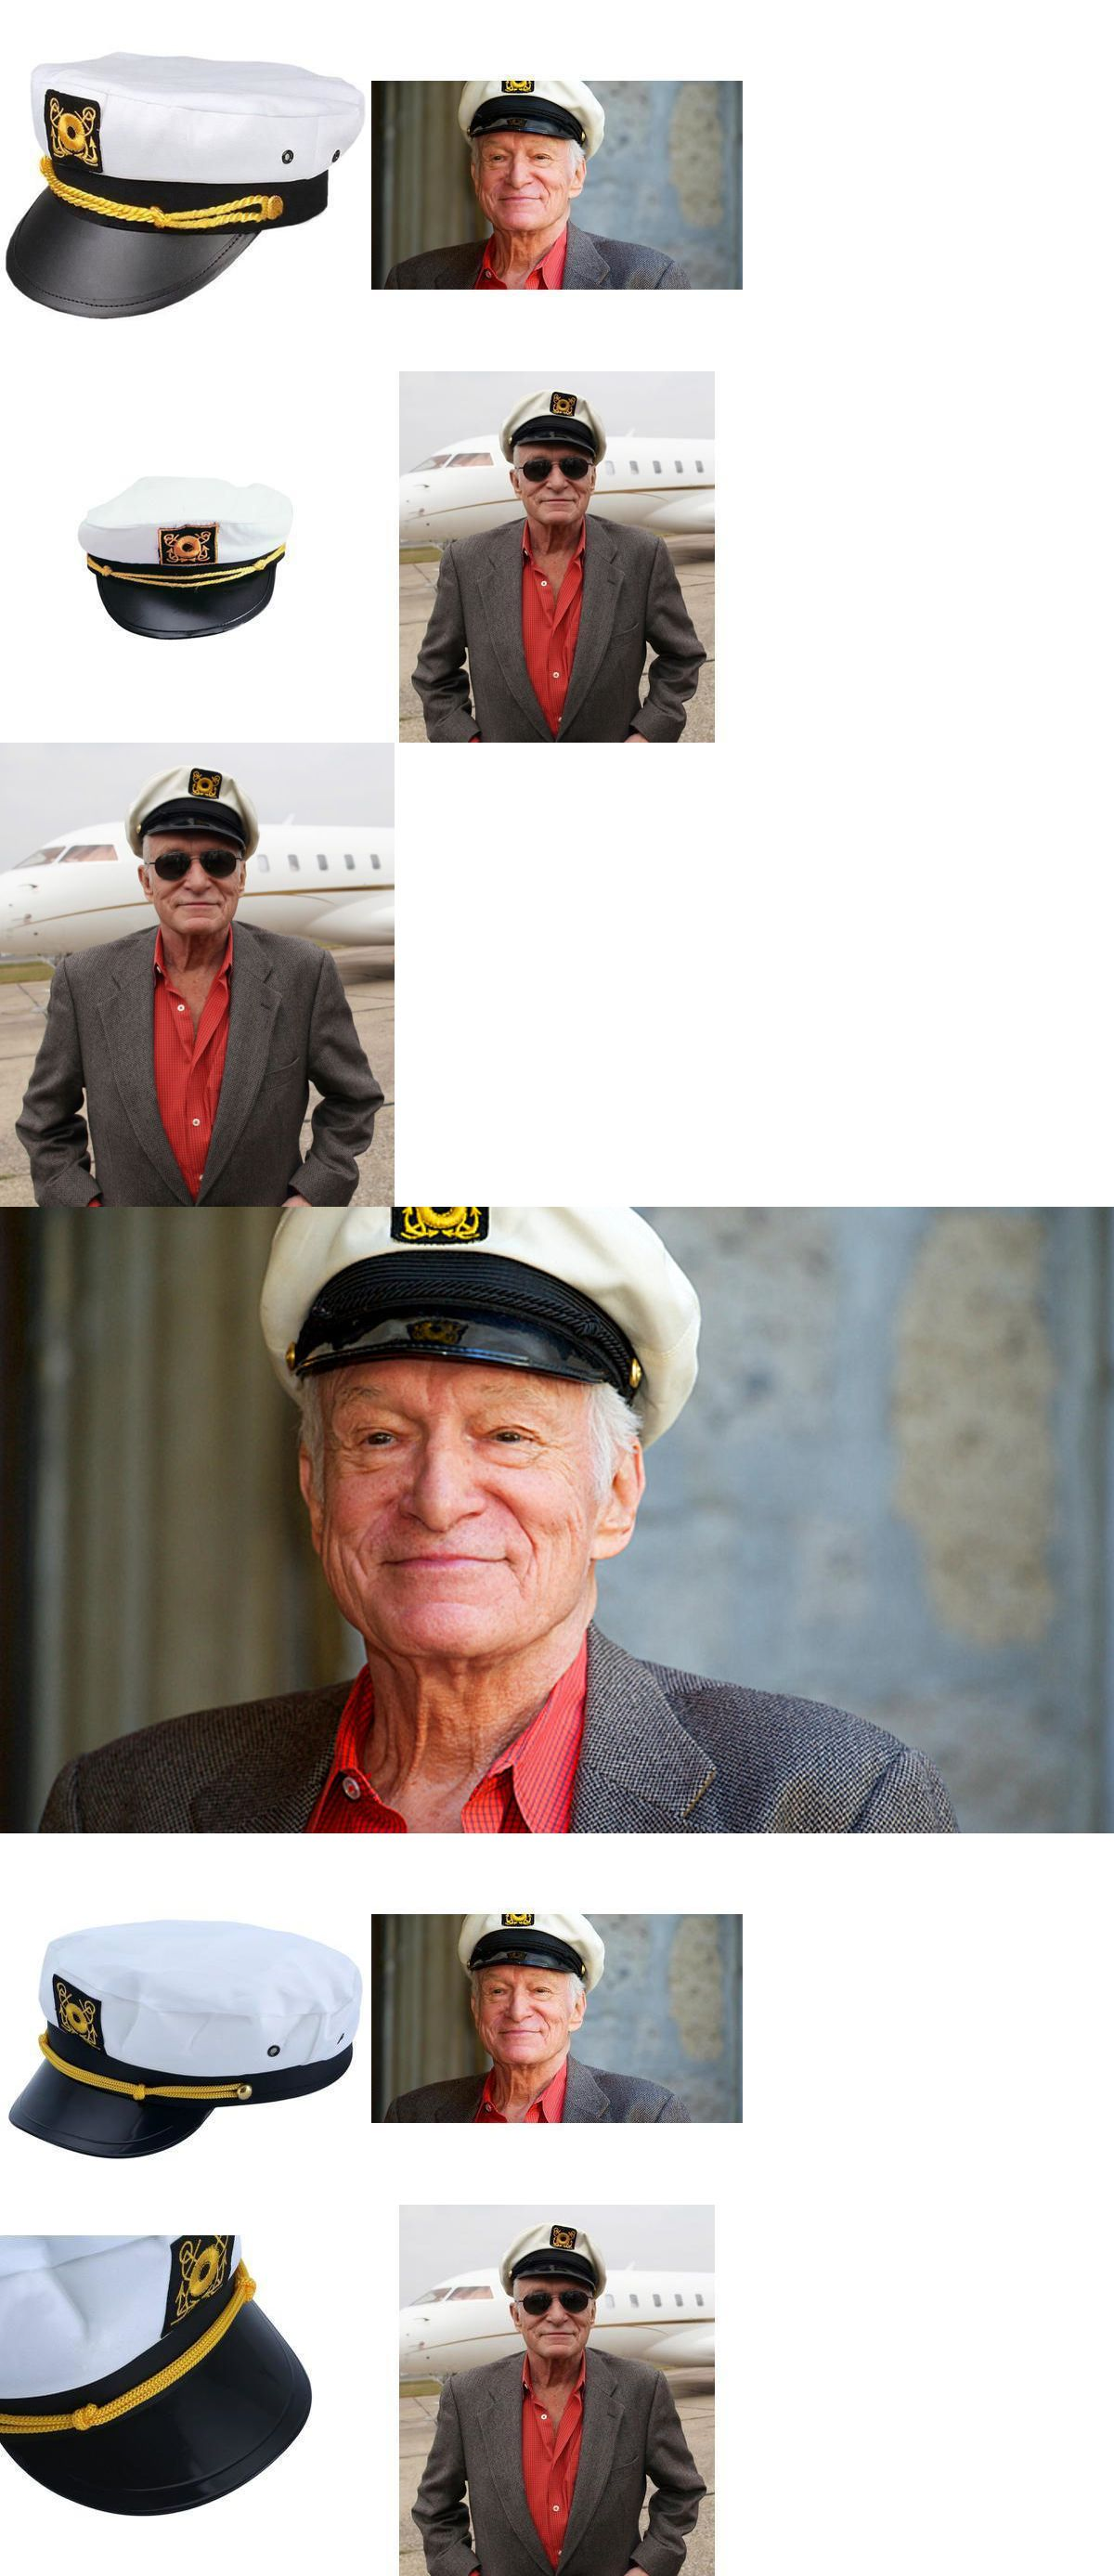 Hats and Headgear 155349  Replica Hugh Hefner Hat Adult Playboy Yacht  Captain Hat Costume Accessory 1 Size -  BUY IT NOW ONLY   10.99 on  eBay   headgear ... ebc6daa183af